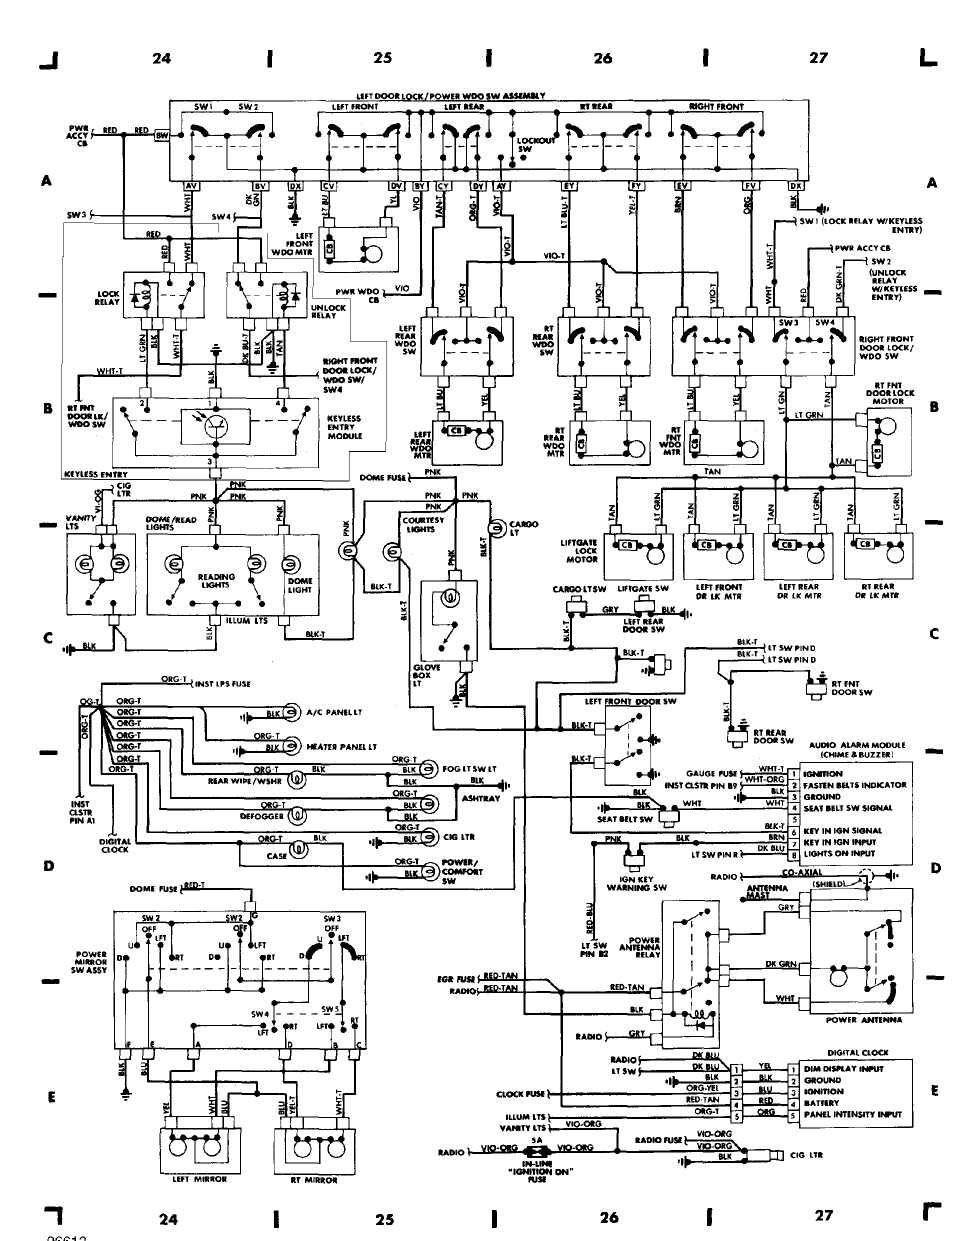 wiring_diagrams_html_61f5e0ad wiring diagrams 1984 1991 jeep cherokee (xj) jeep 95 jeep wrangler wiring harness diagram at n-0.co